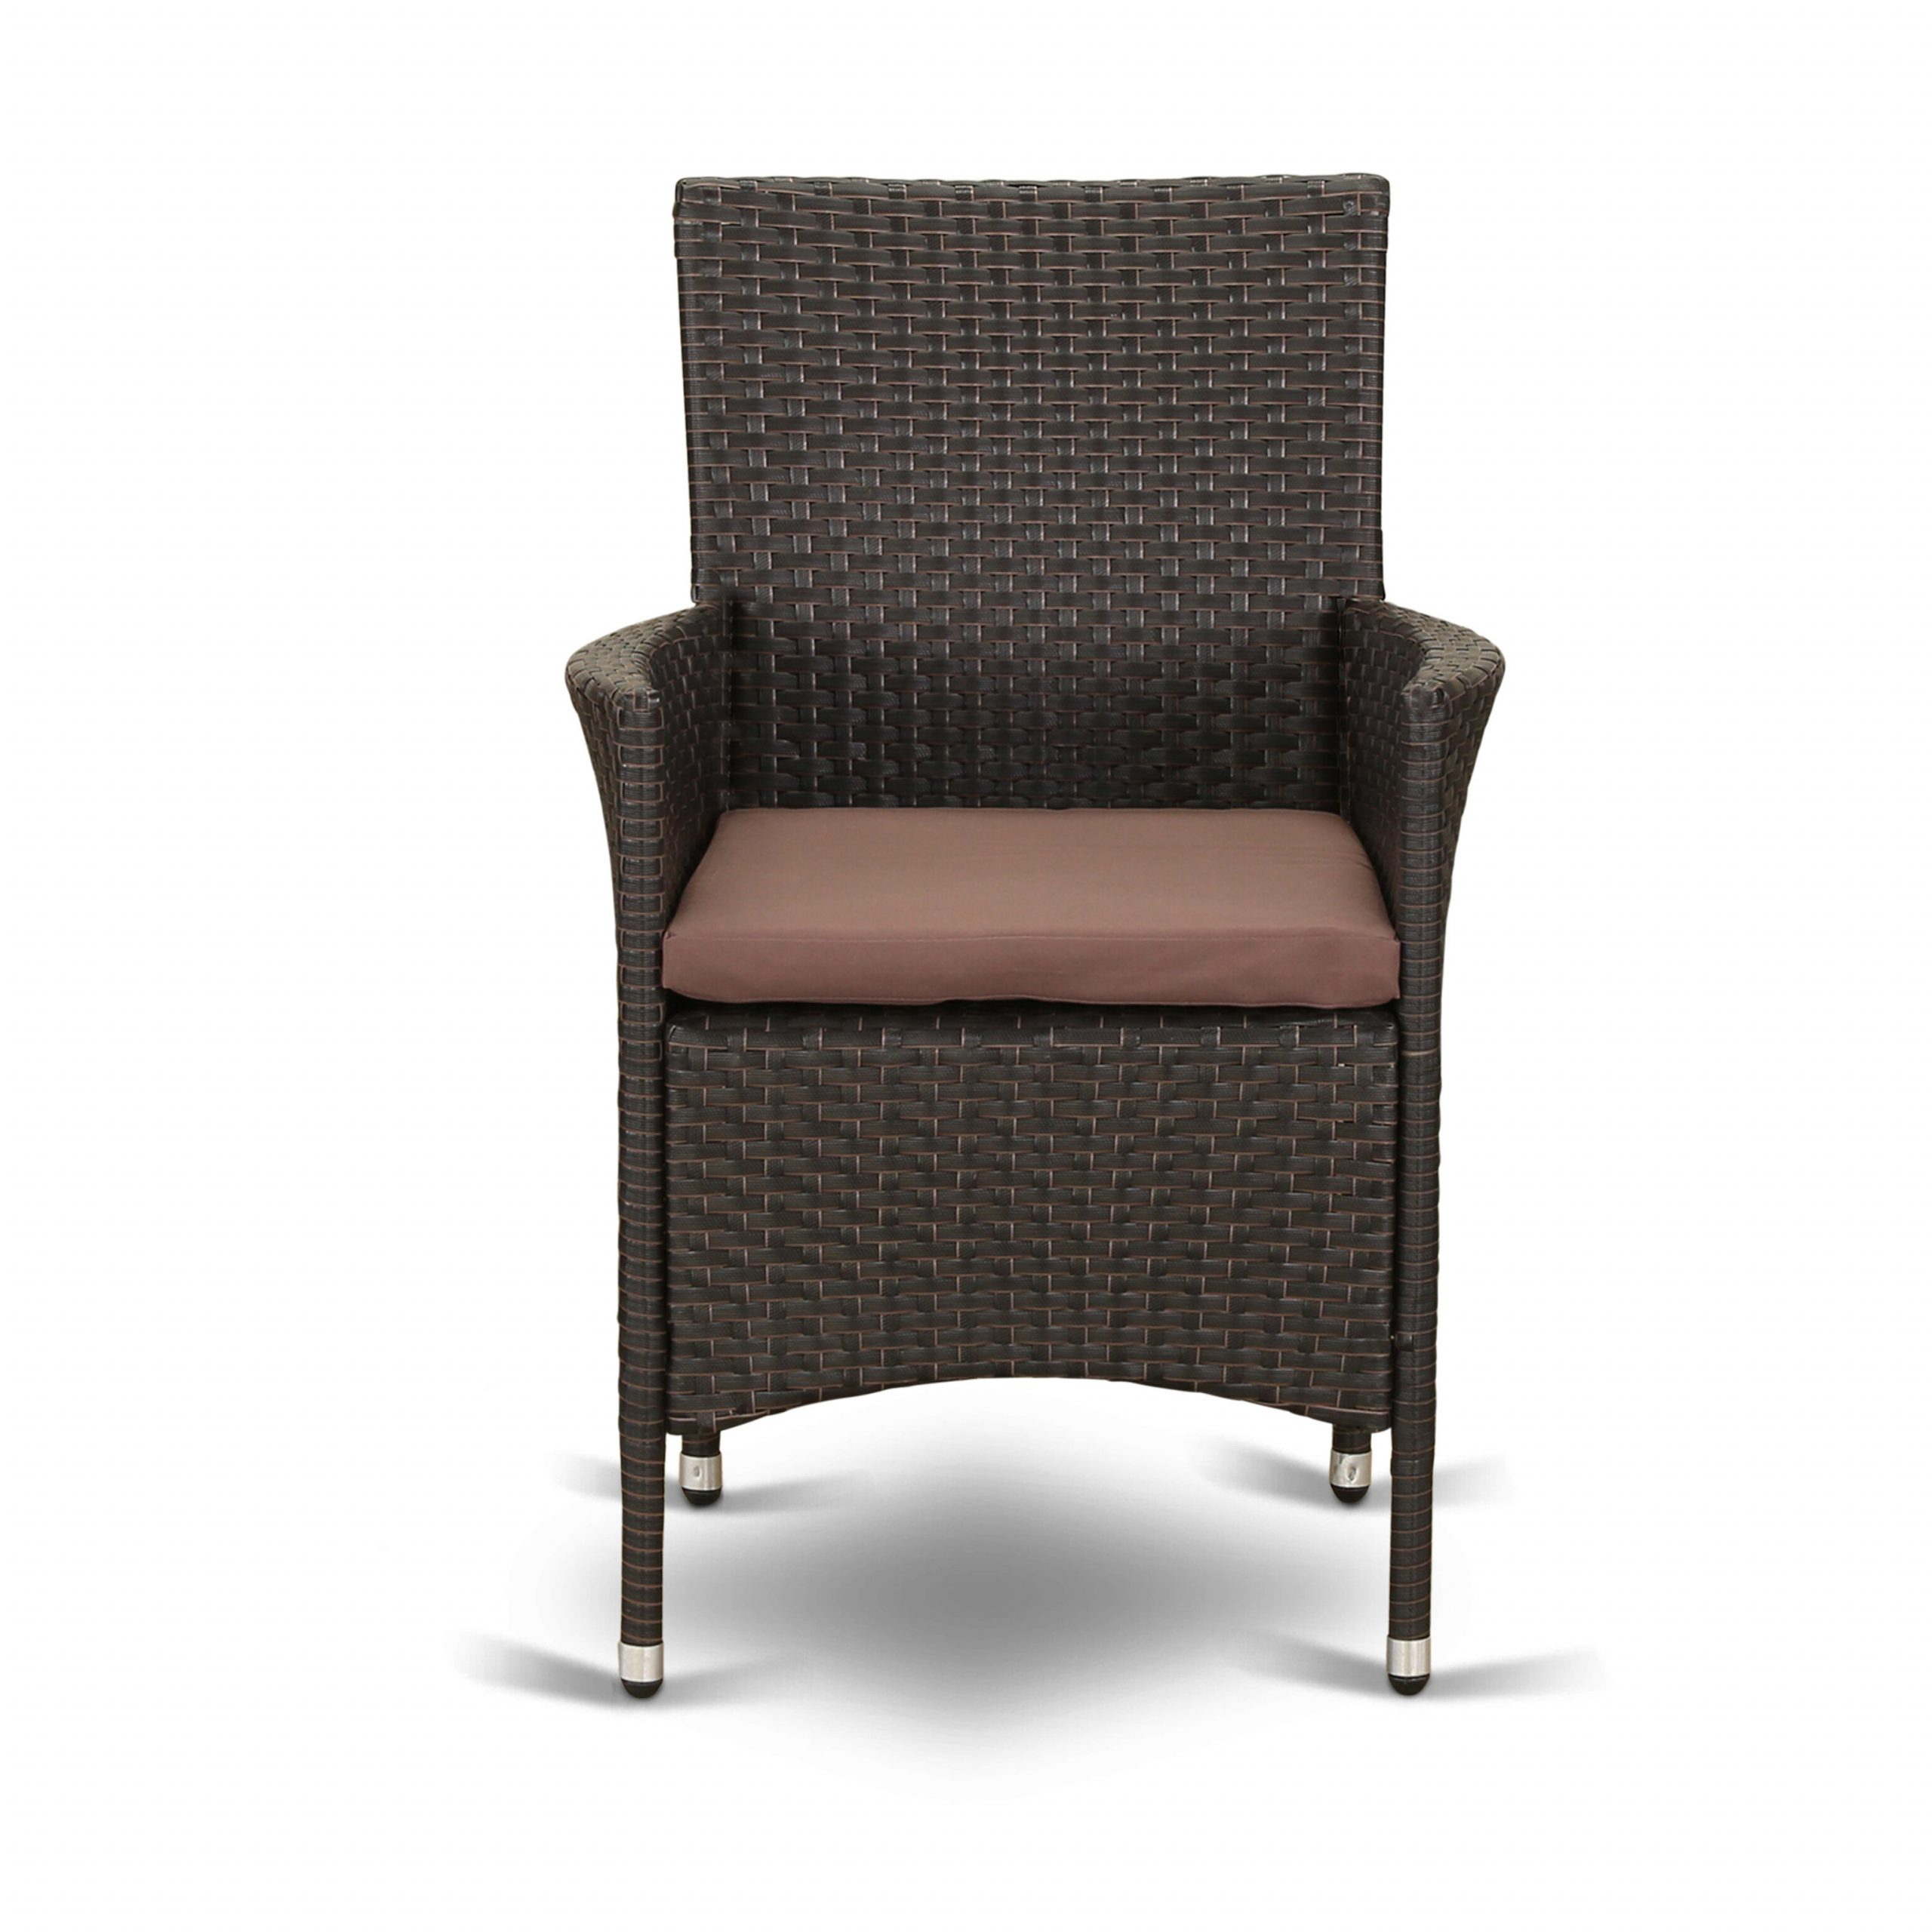 Pauly Patio Dining Armchair With Cushion Pertaining To Most Up To Date Lublin Wicker Tete A Tete Benches (View 29 of 30)